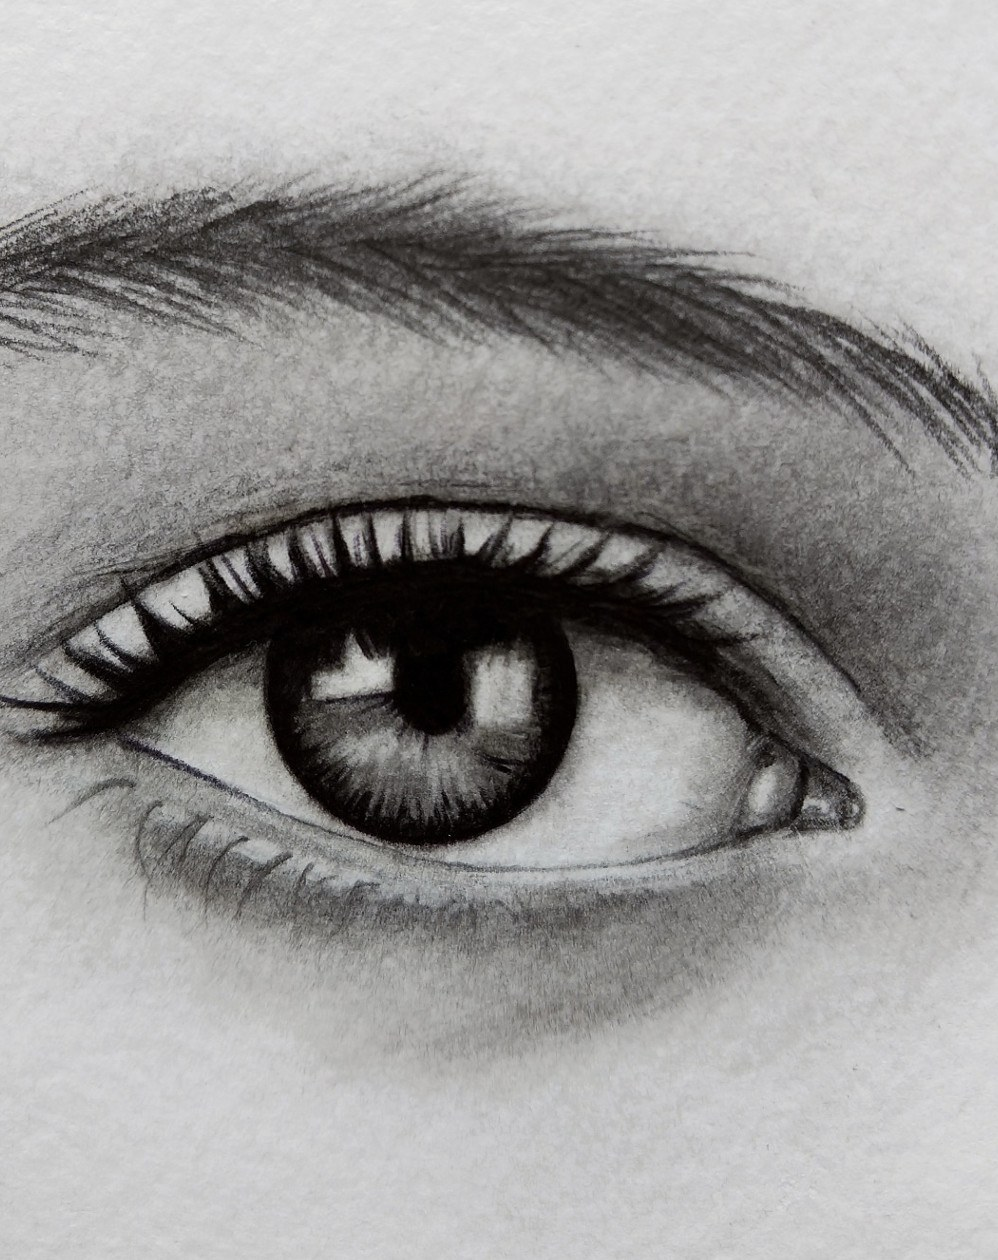 Drawing detail: close-up of an eye from one of Kati's portraits